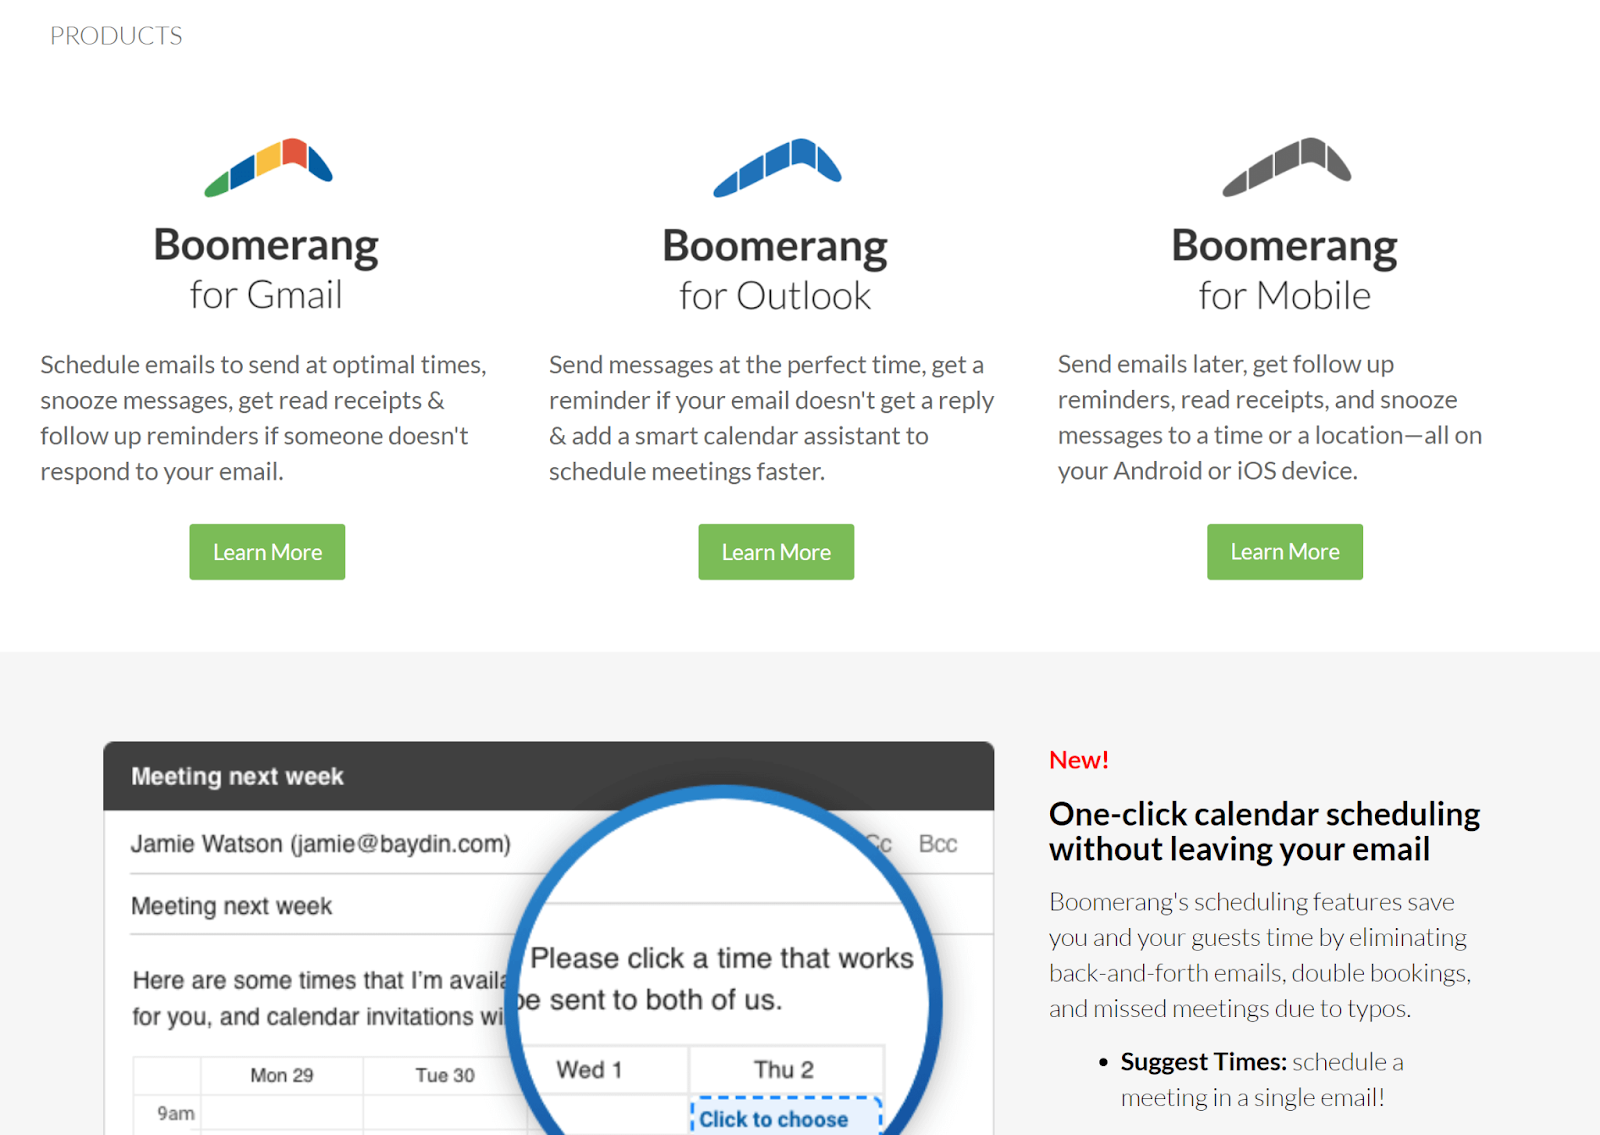 Second section of Boomerang landing page, displaying more details about features